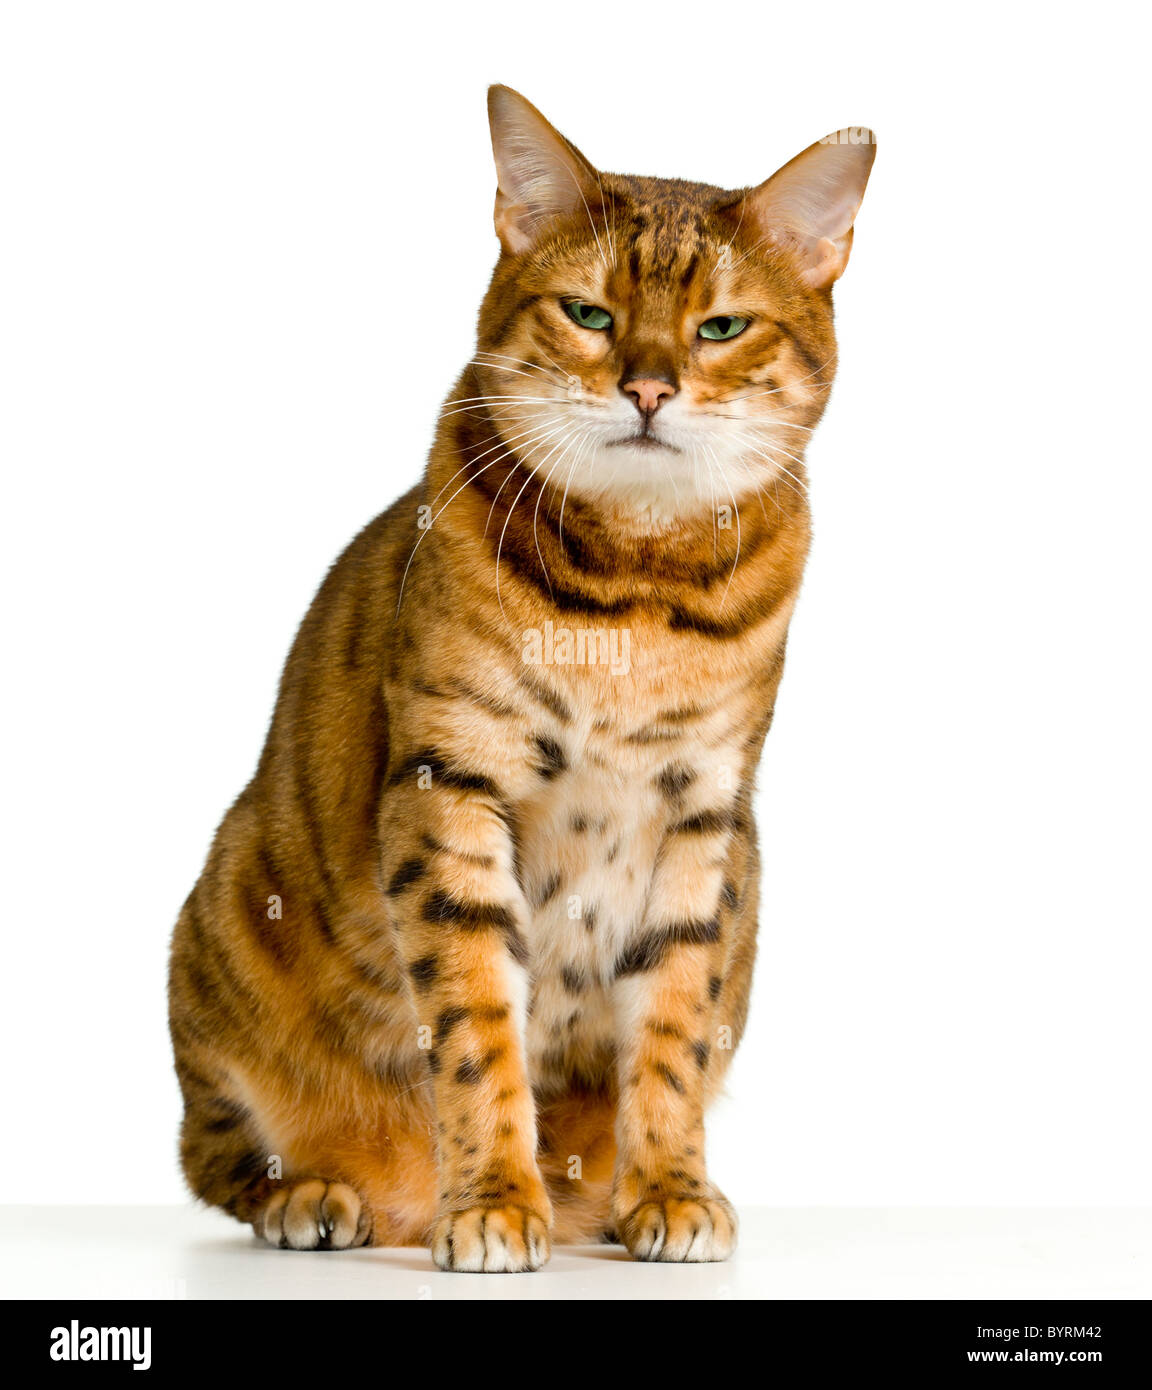 Bengal cat in orange and brown stripes like a tiger ...Orange And White Bengal Cat